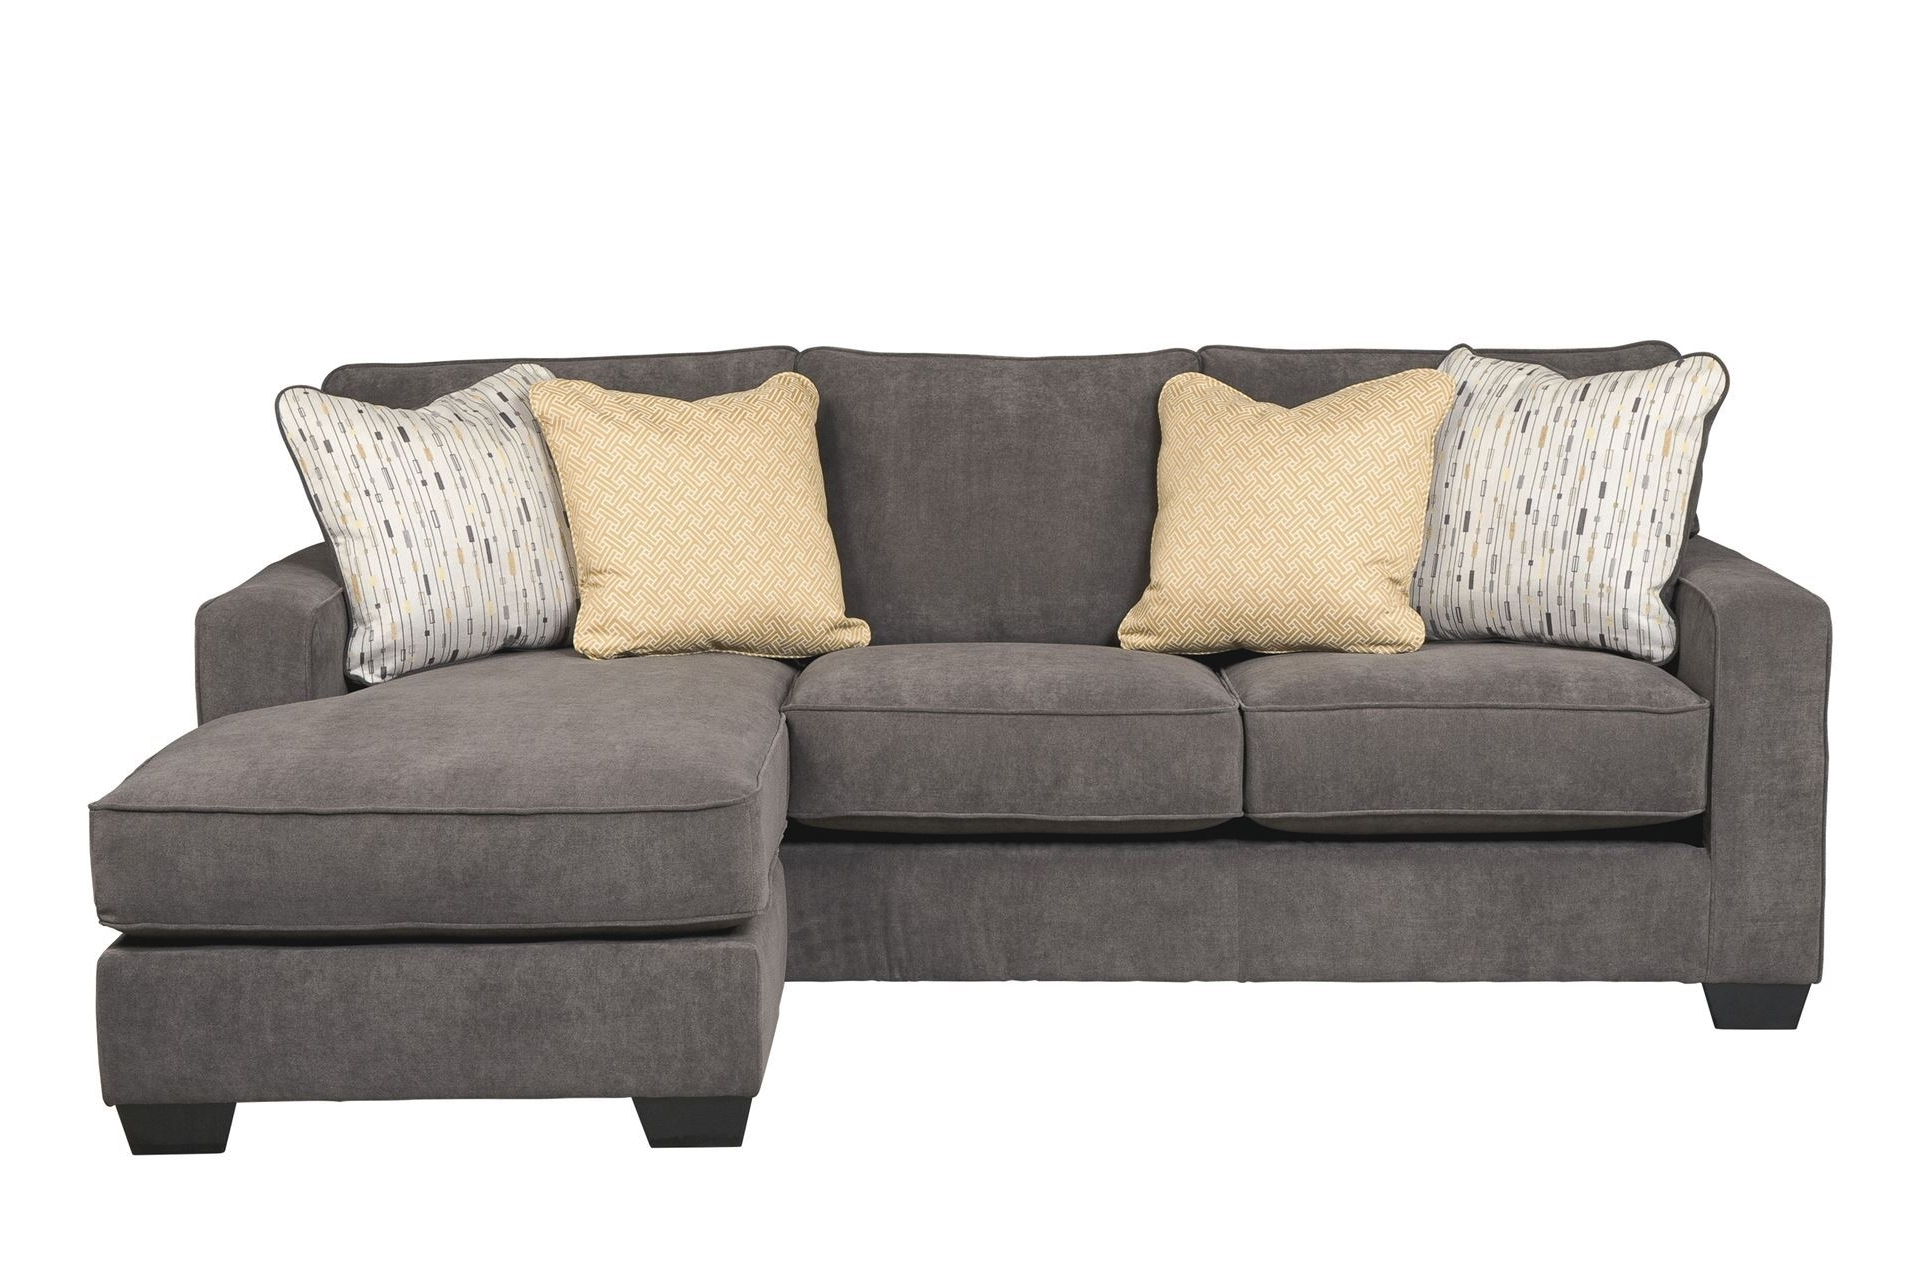 Living Spaces, Living Rooms And Apartments Regarding Preferred Living Spaces Sectional Sofas (View 2 of 20)